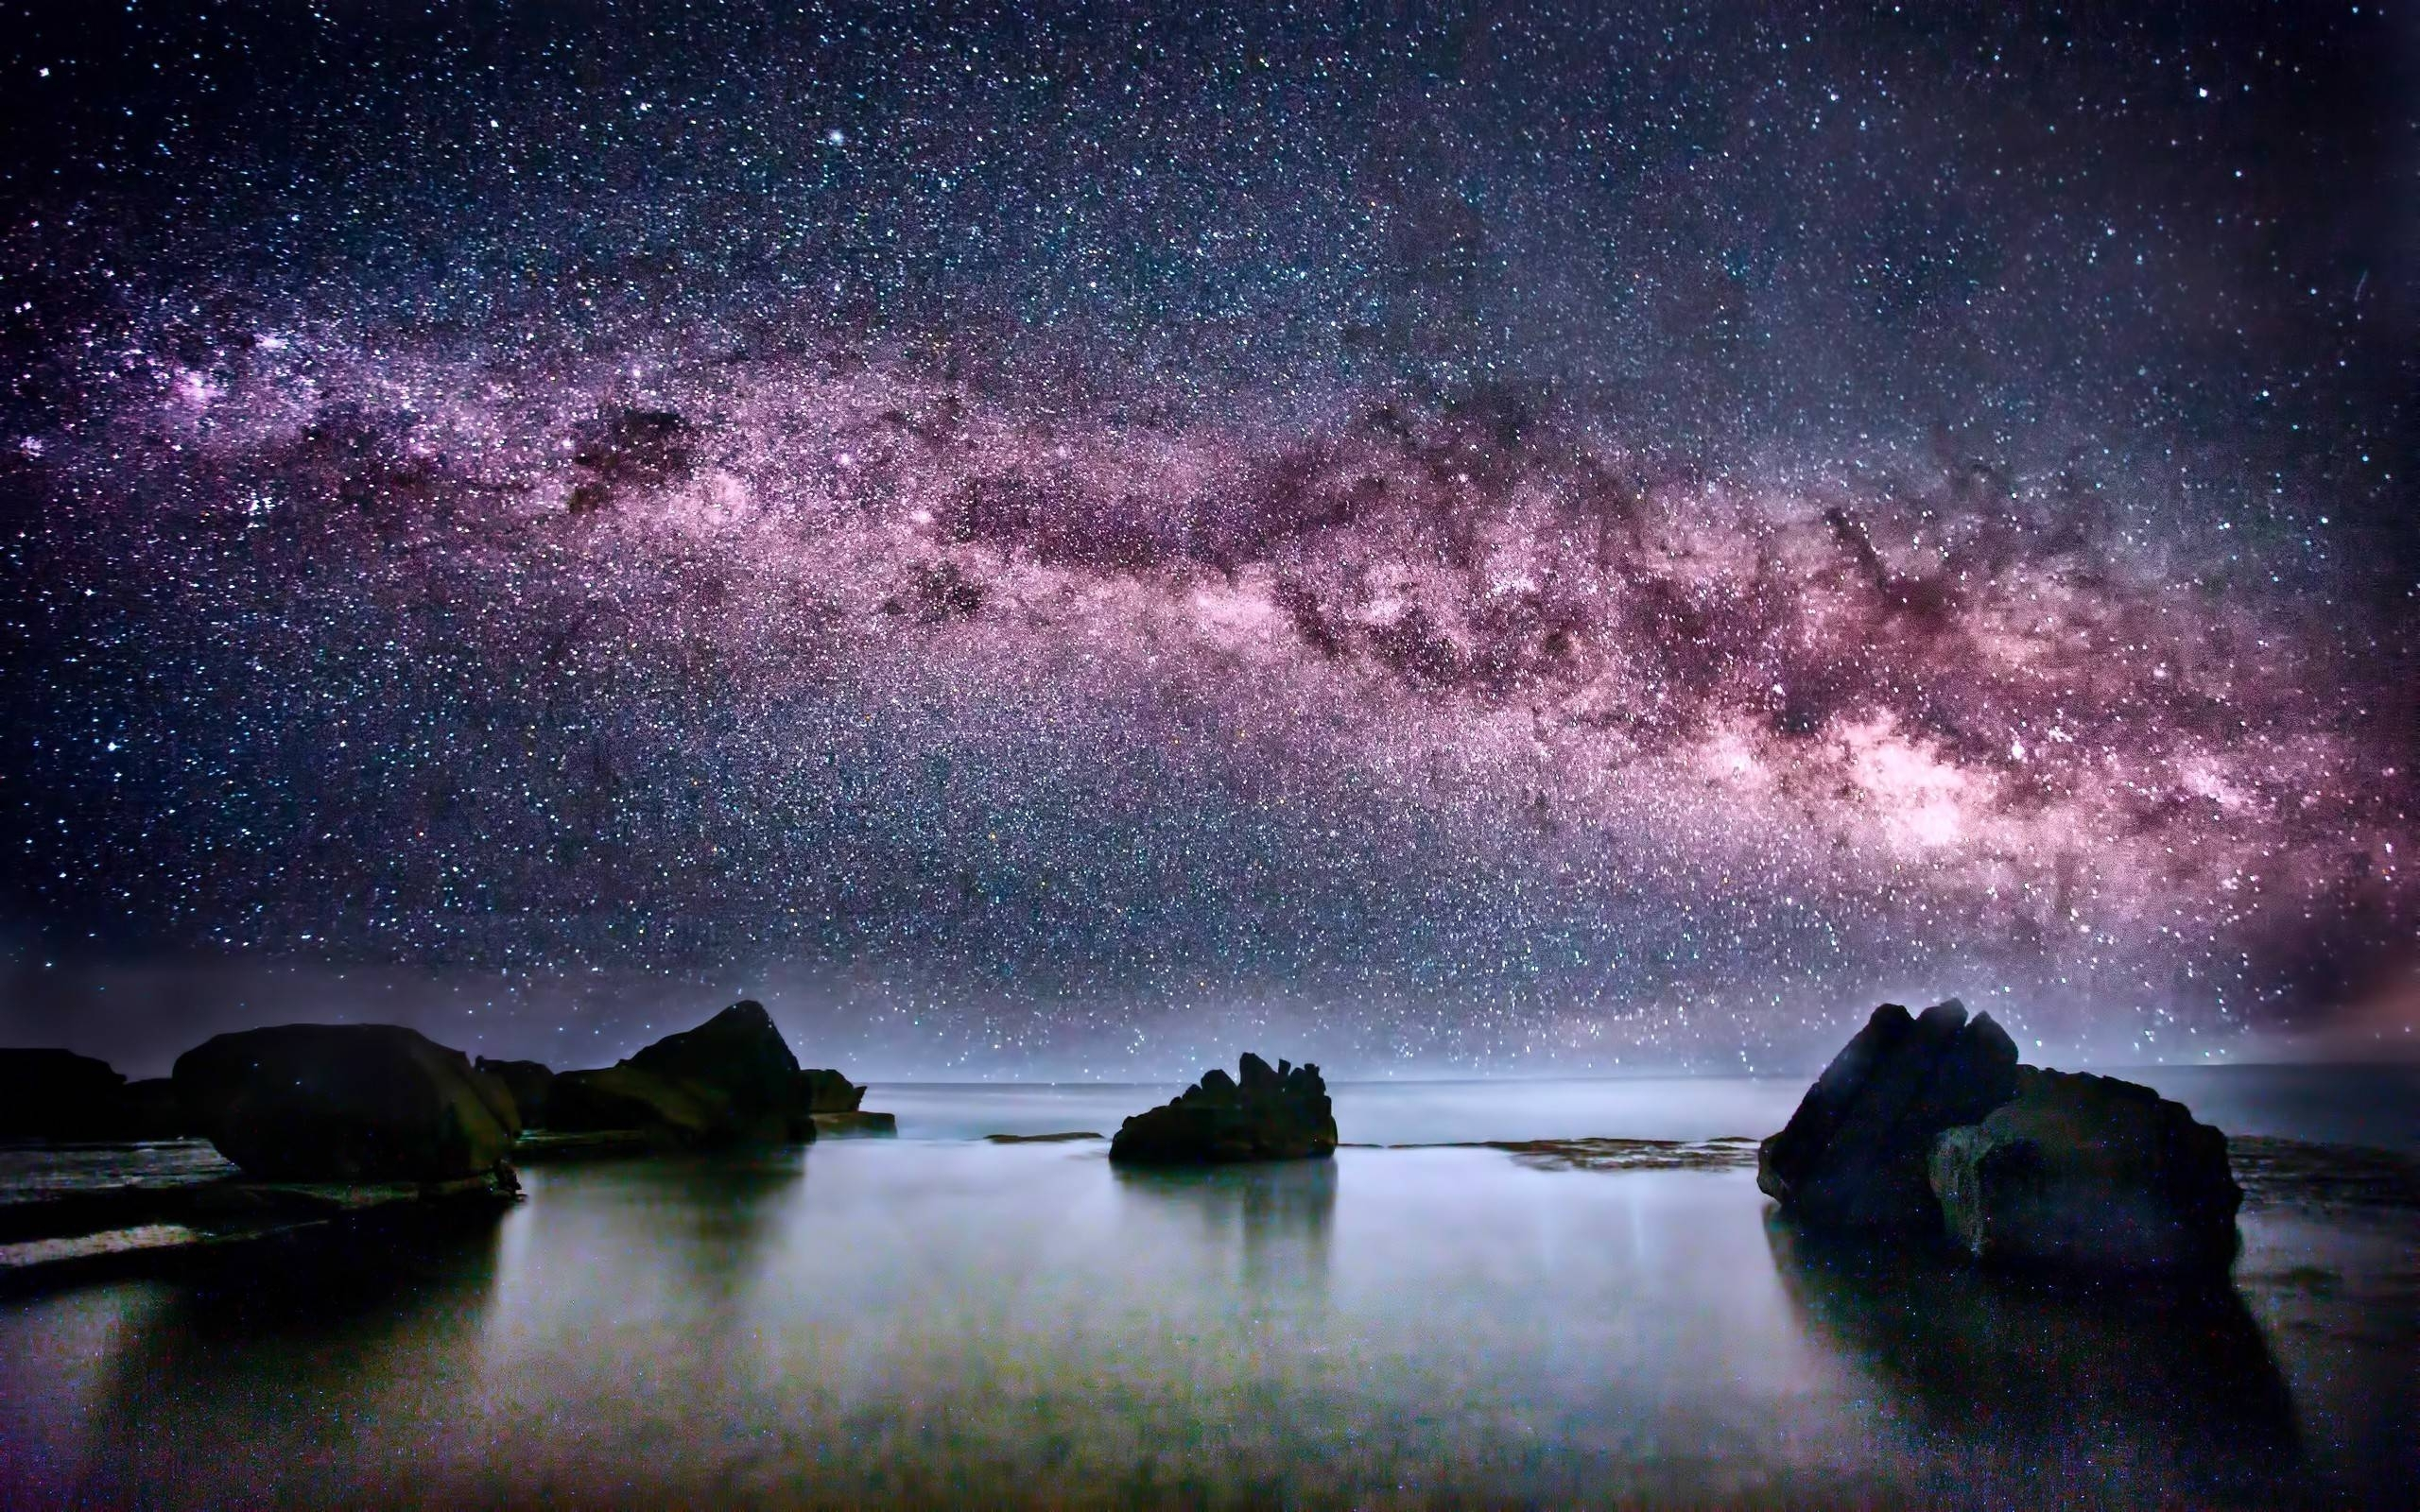 milky way galaxy backgrounds - wallpaper cave